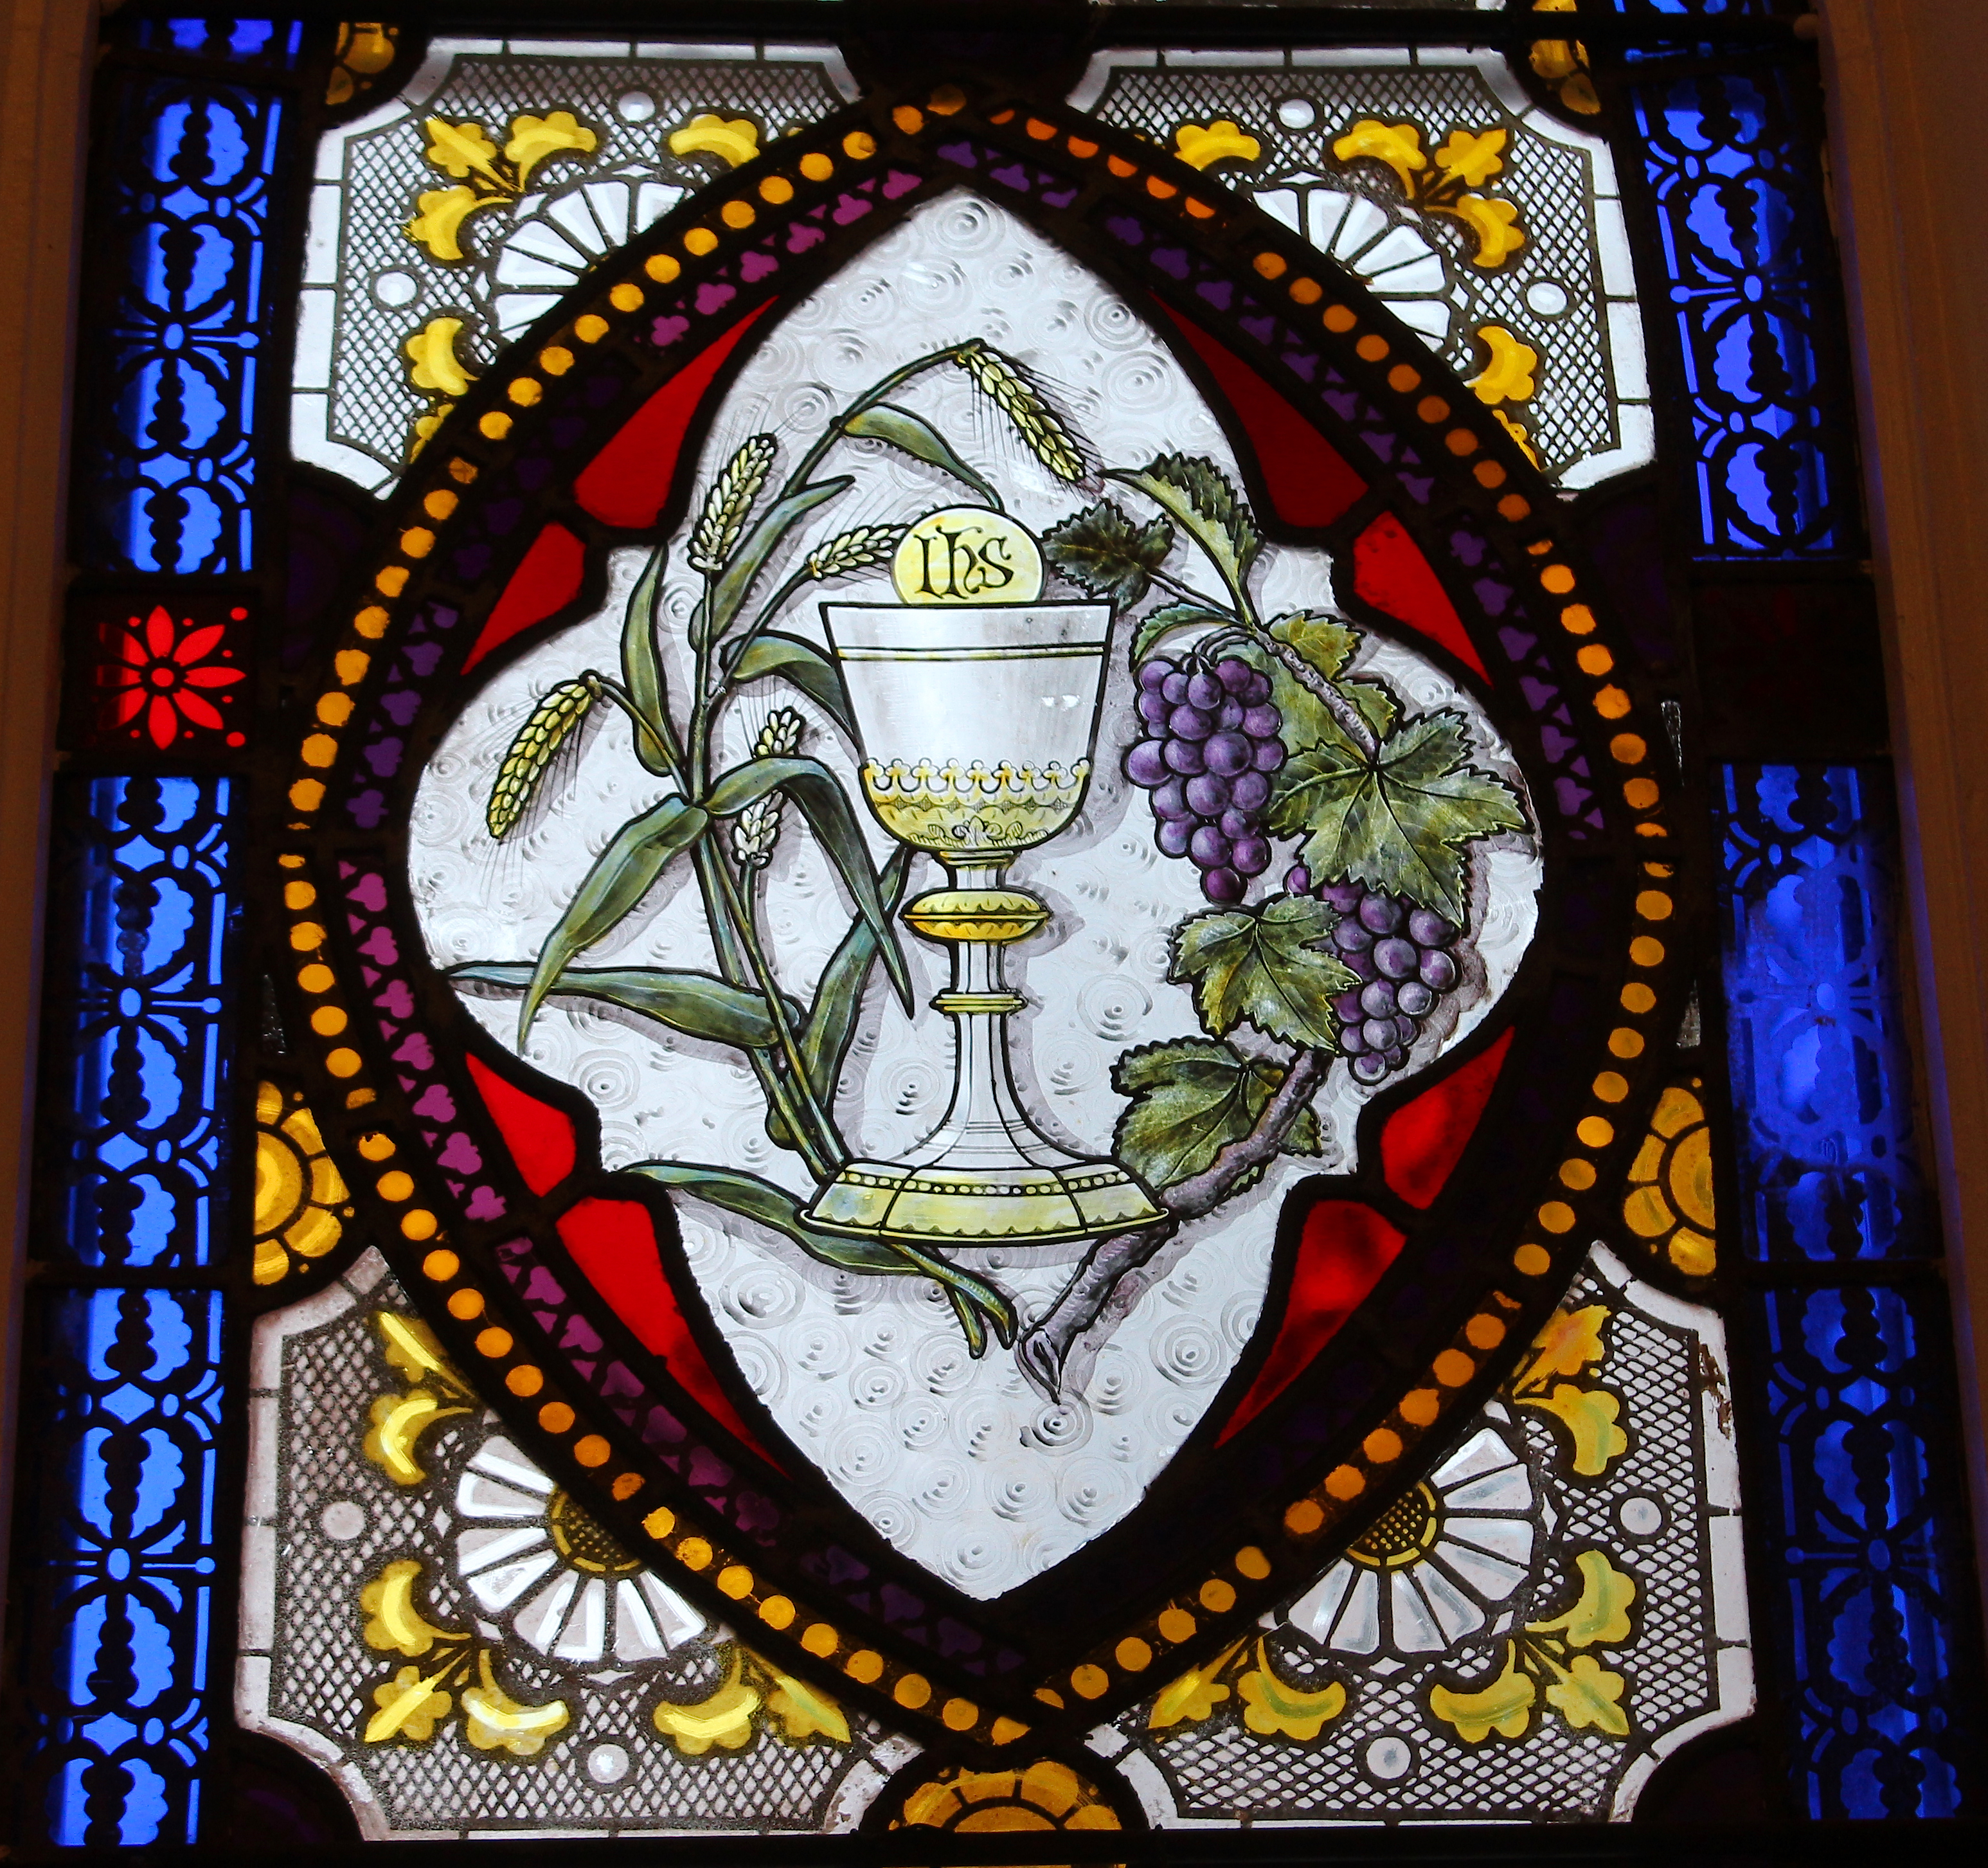 a stained glass window of a chalice and host, with wheat on one side and purple grapes on the other